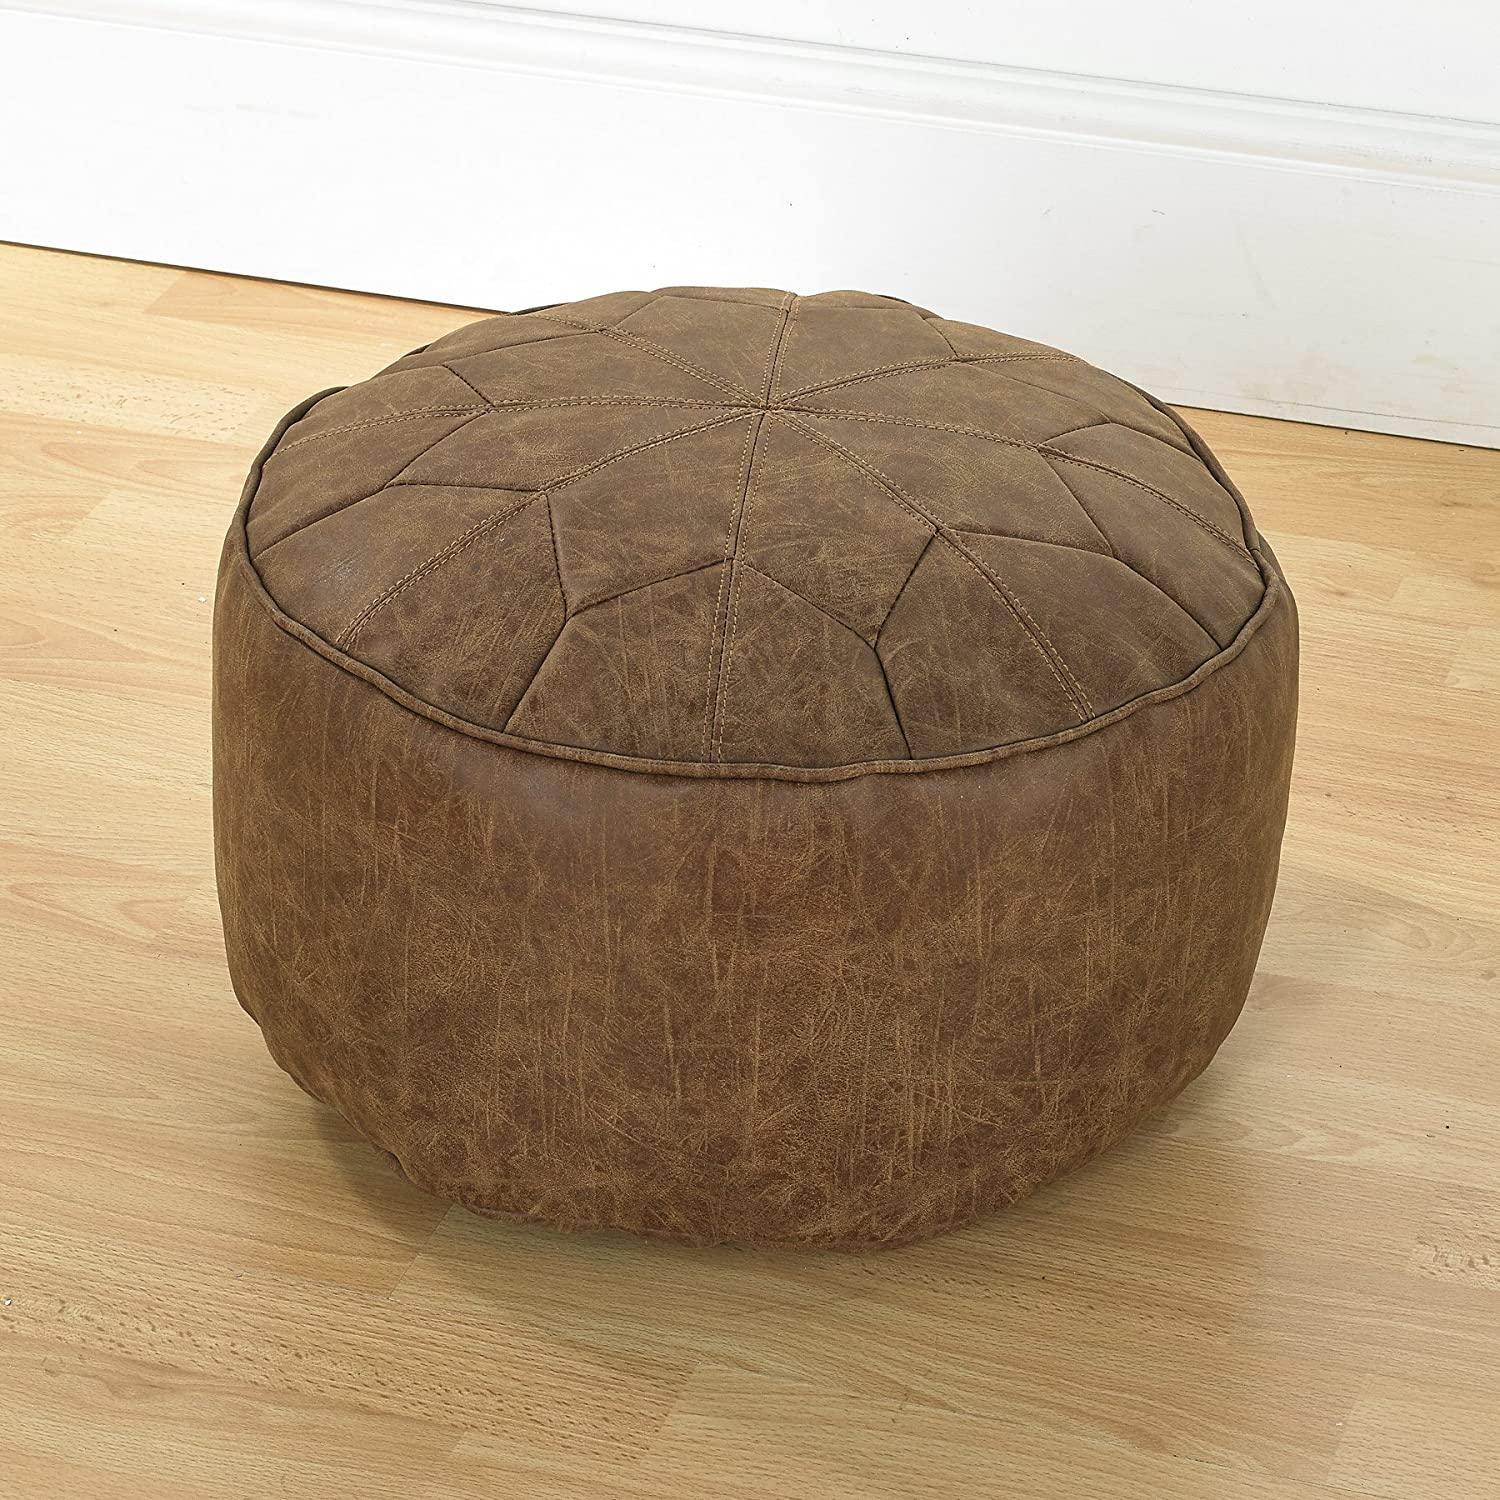 Faux Leather Bean Bag Footstools Moroccan Style Antique Effect 40cm Wide x 20cm High (Brown) Better Dreams